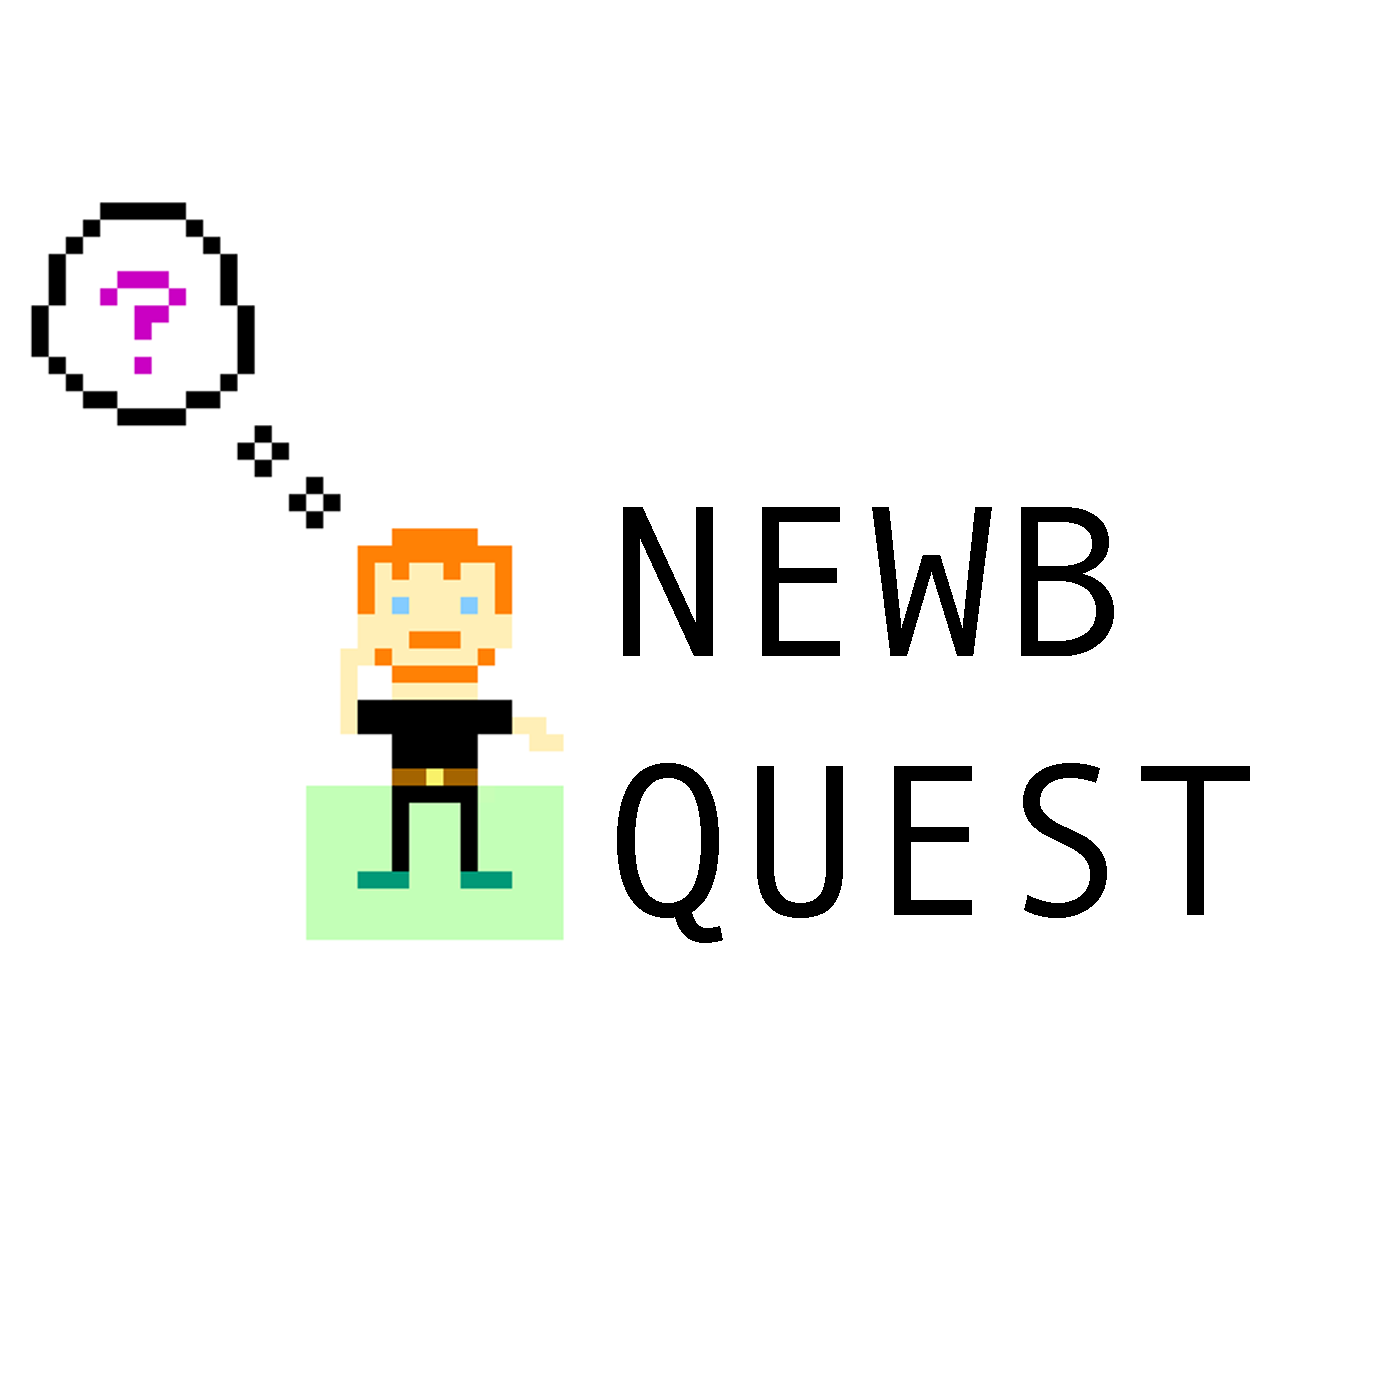 NewbQuest: Learn Indie Game Development